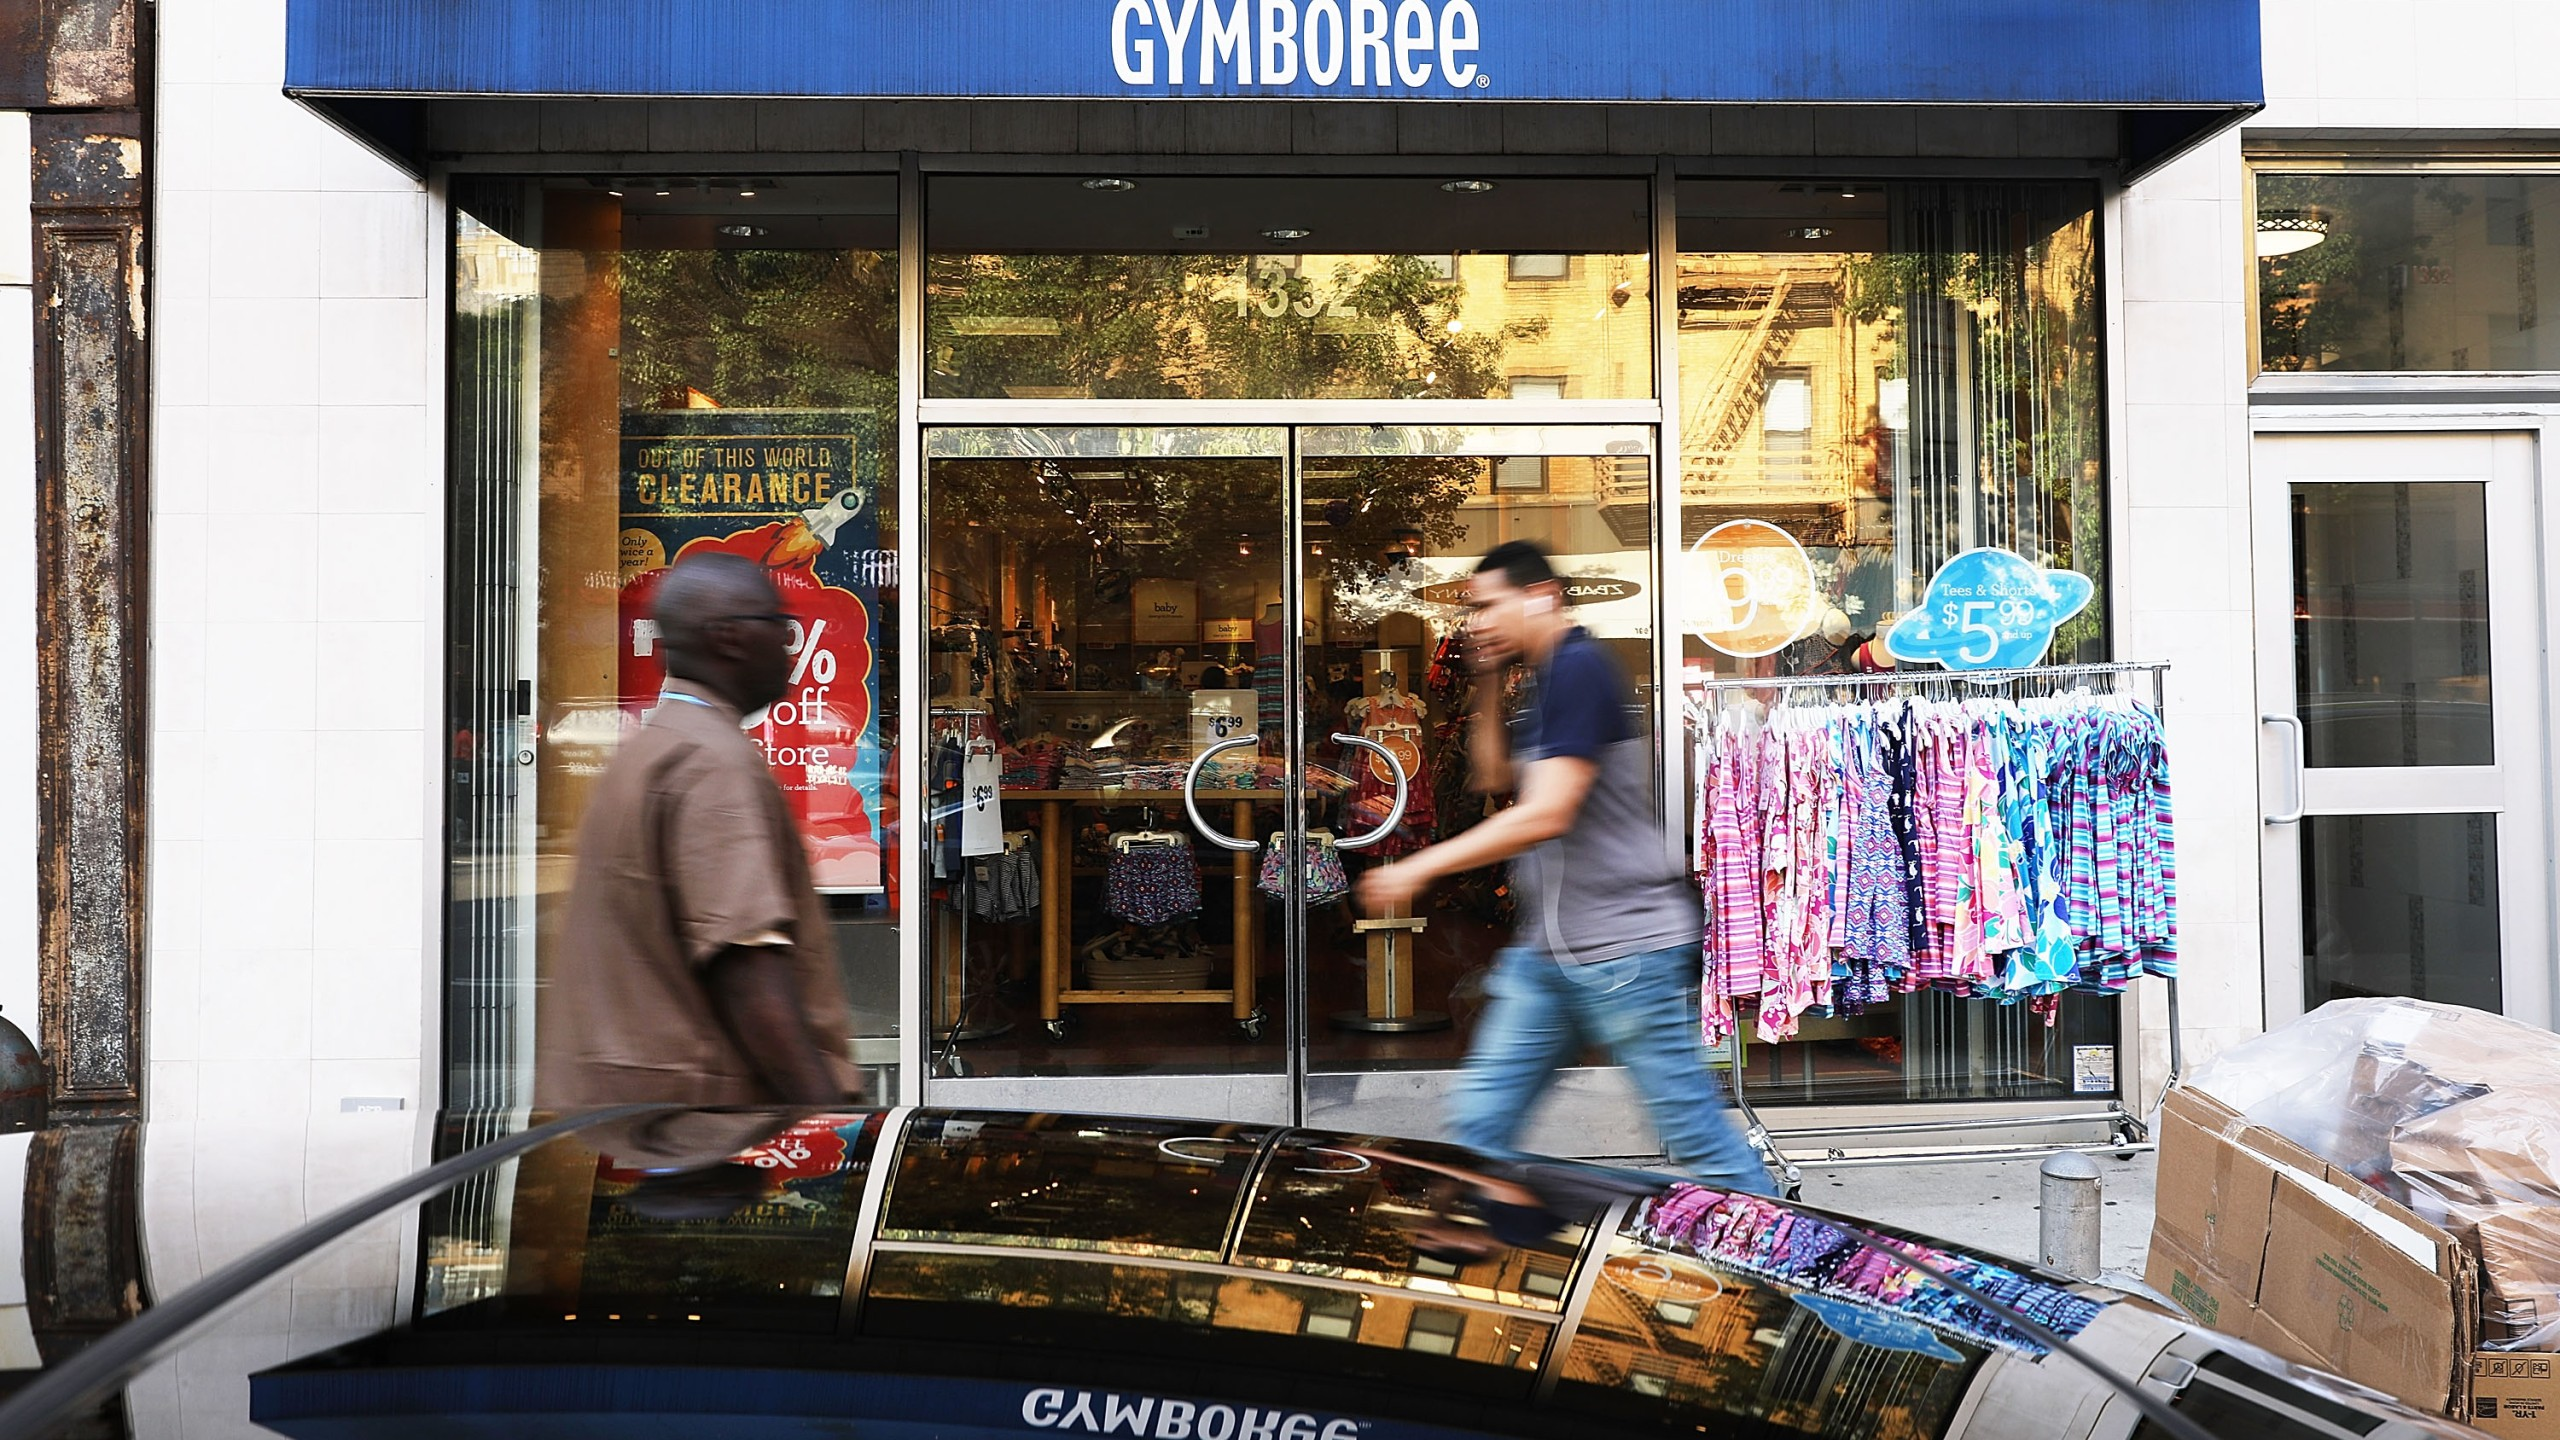 People walk by the children's clothing retailer Gymboree, which has filed for bankruptcy protection on June 13, 2017 in New York City. (Credit: Spencer Platt/Getty Images)